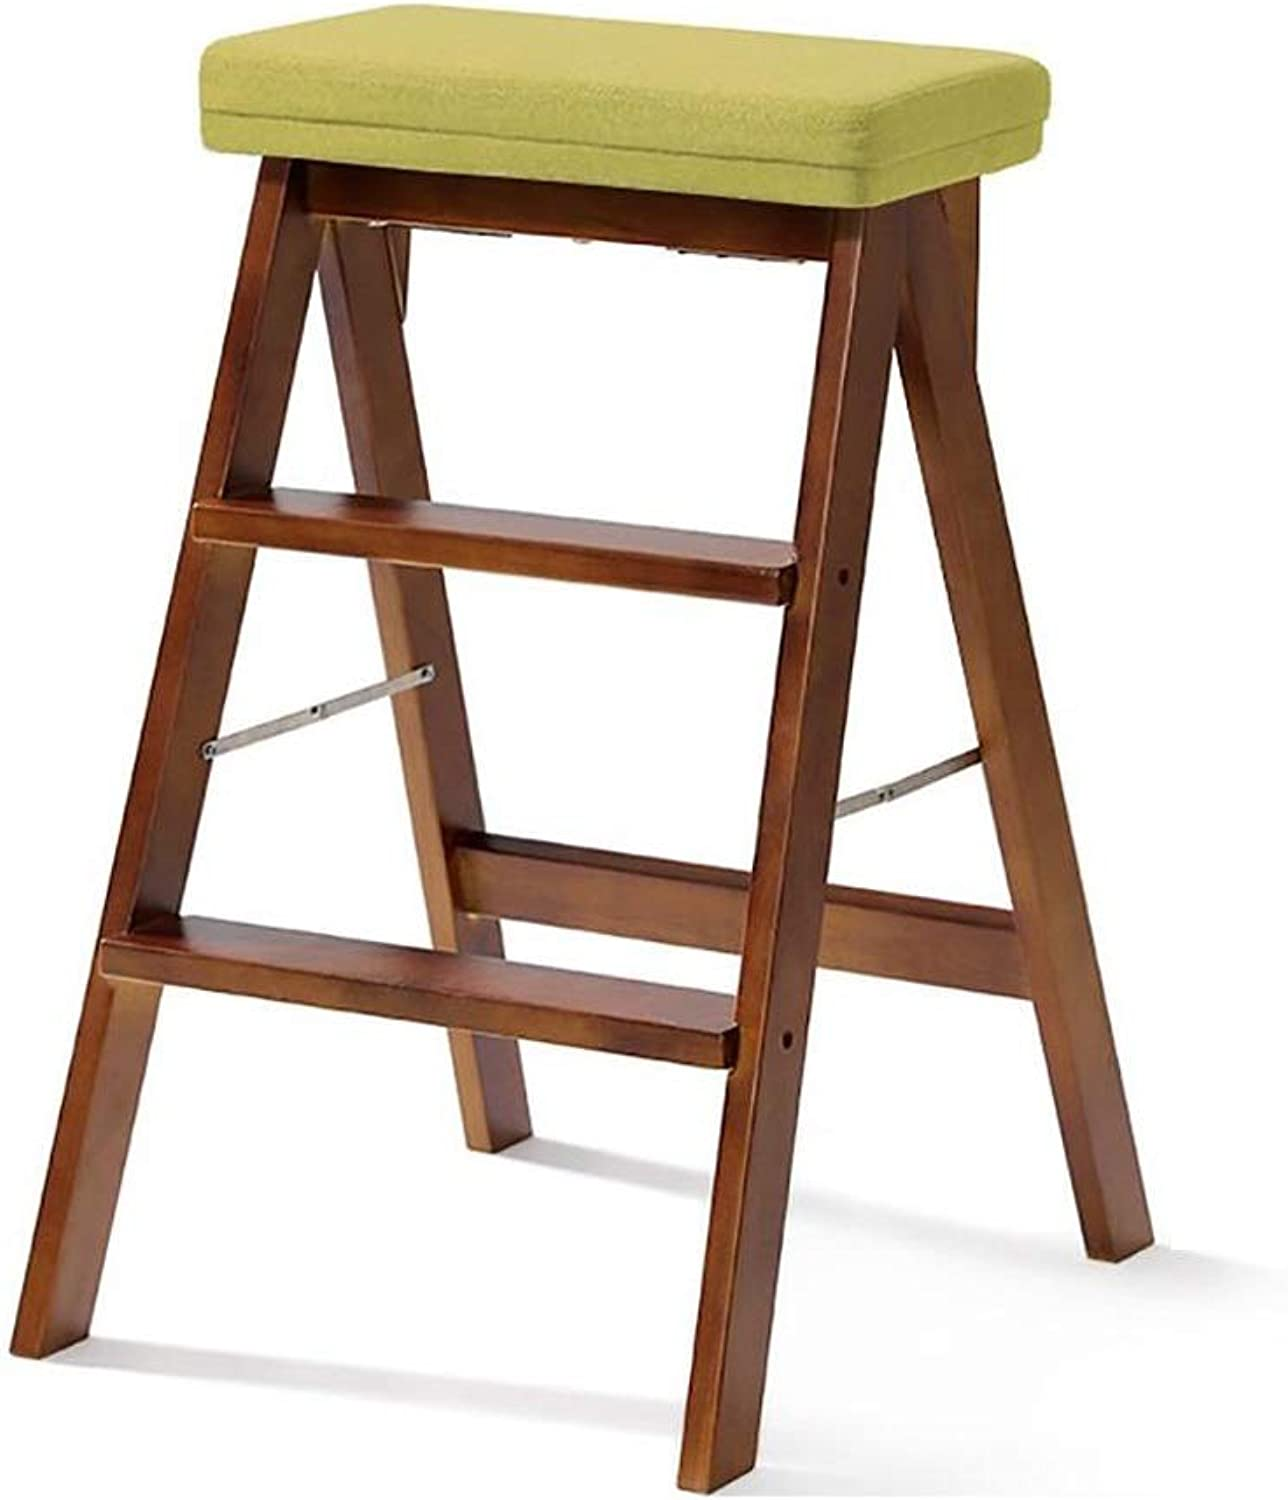 GAIXIA-Ladder stool Staircase Stool Solid Wood Stair Stool Folding Chair Linen Seat Living Room Kitchen Library Three-Layer Multifunctional Brown 42x48x64CM (color   Green)